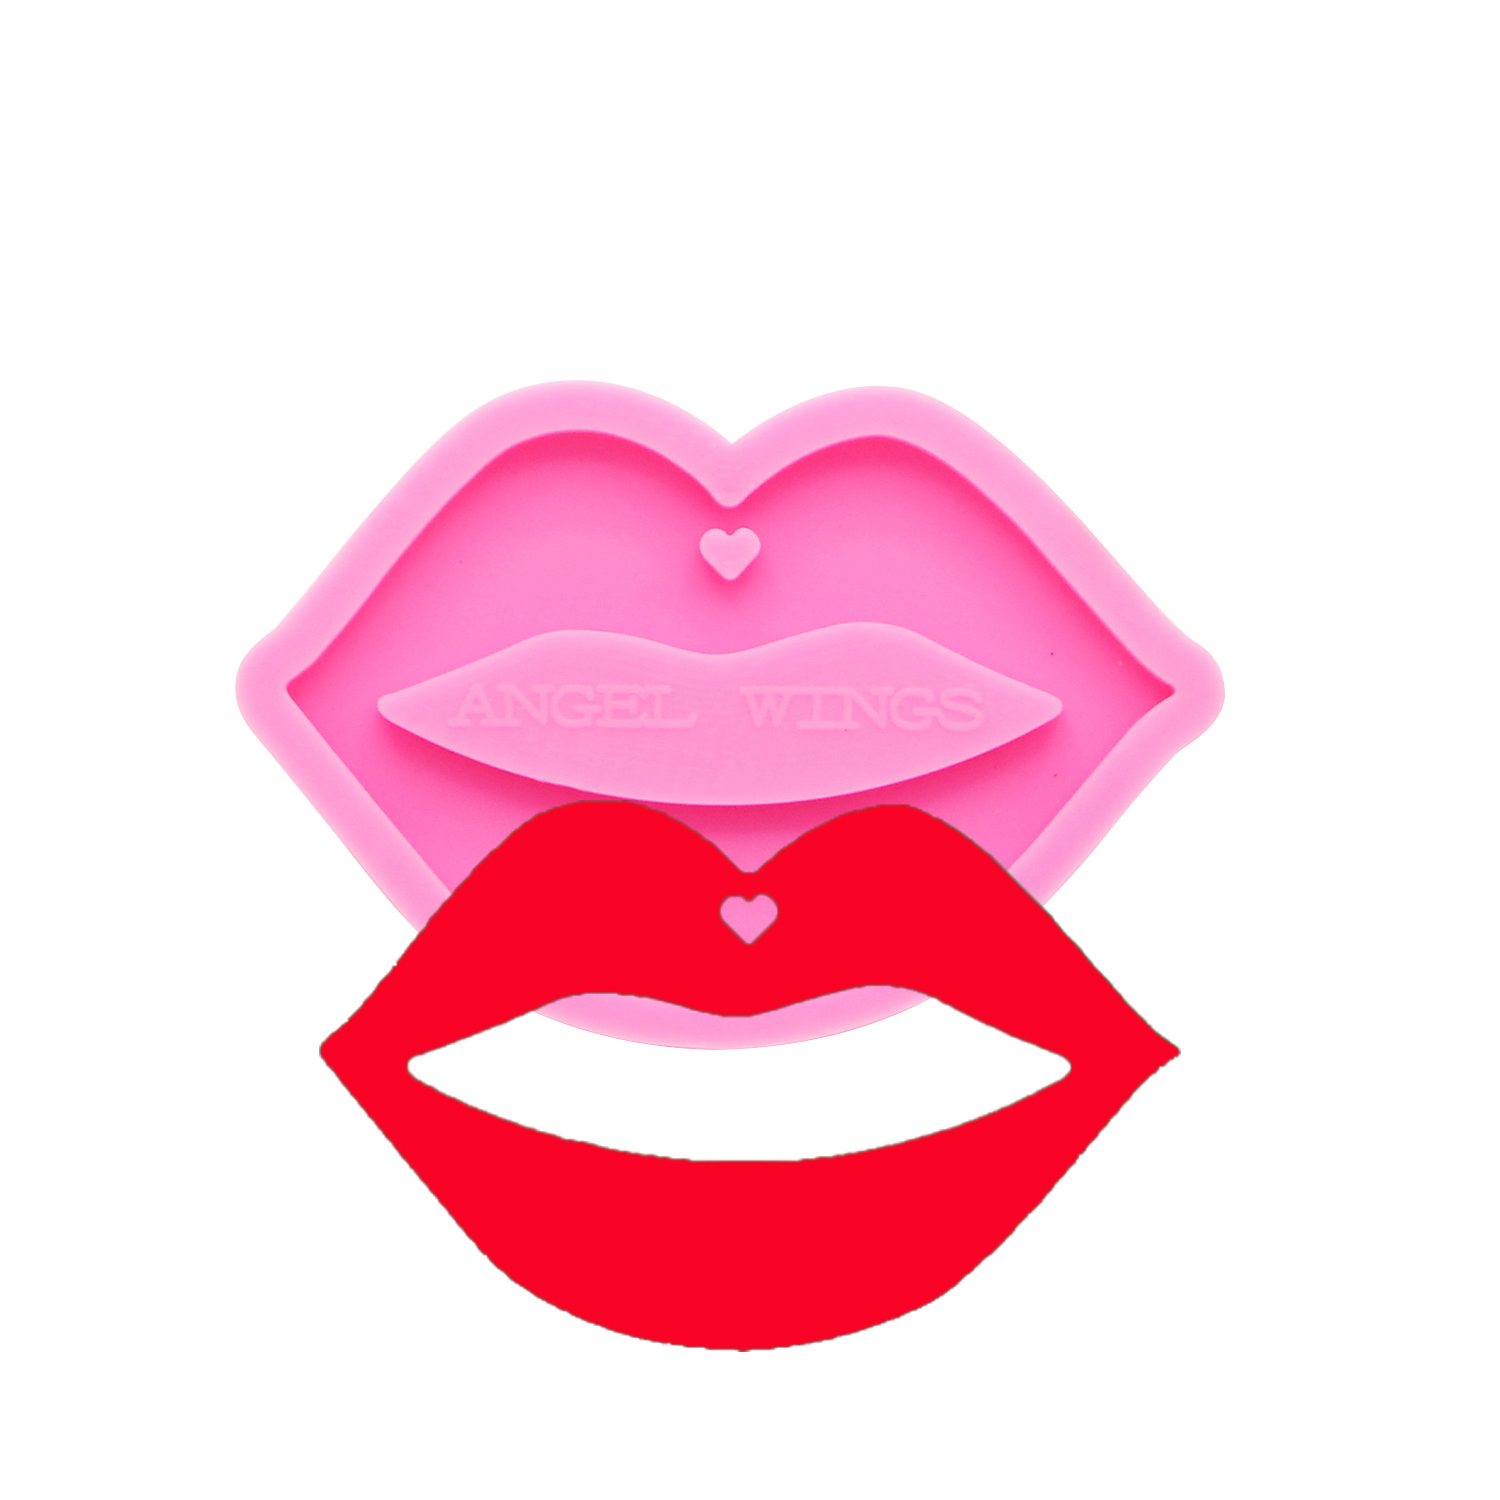 Shiny keychains Lips Silicone Molds DIY mouth Jewelry keychain mould Epoxy Resin Mold Custom DY0170